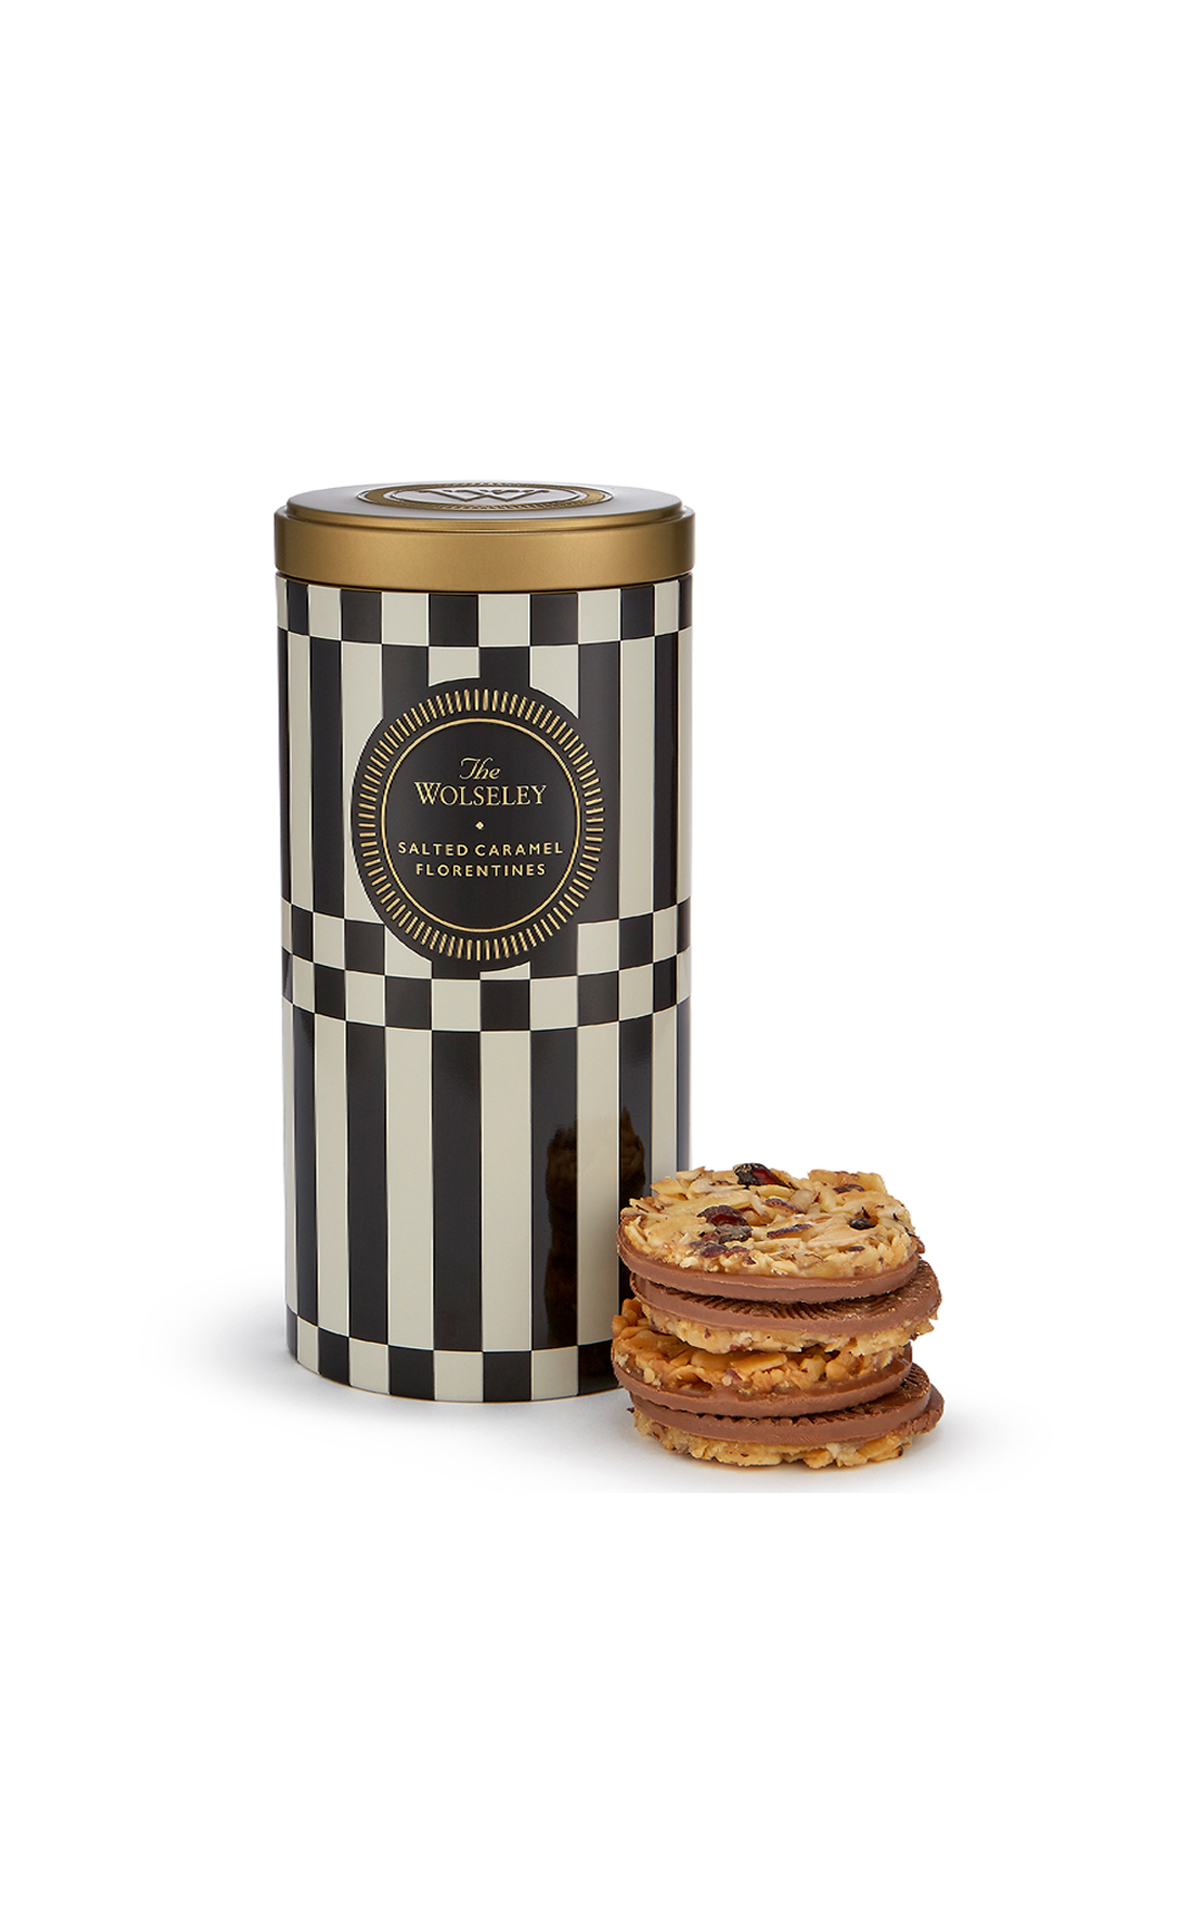 Café Wolseley Florentines from Bicester Village